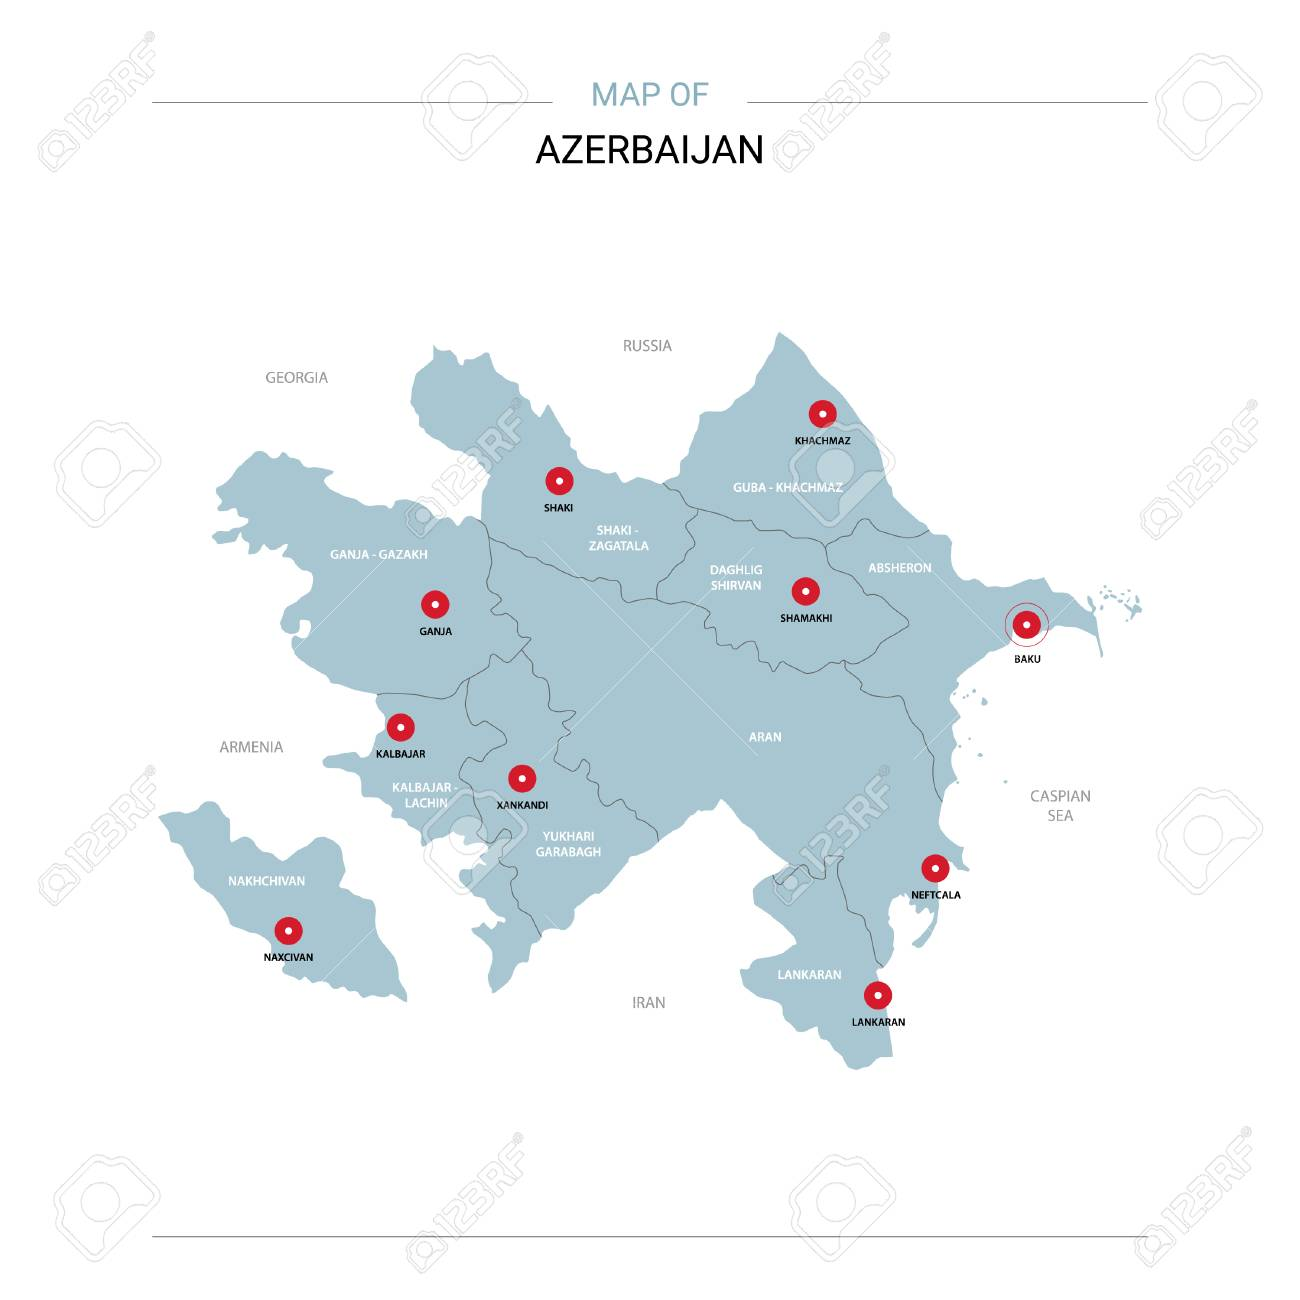 Azerbaijan vector map. Editable template with regions, cities, red pins and blue surface on white background. - 111124945